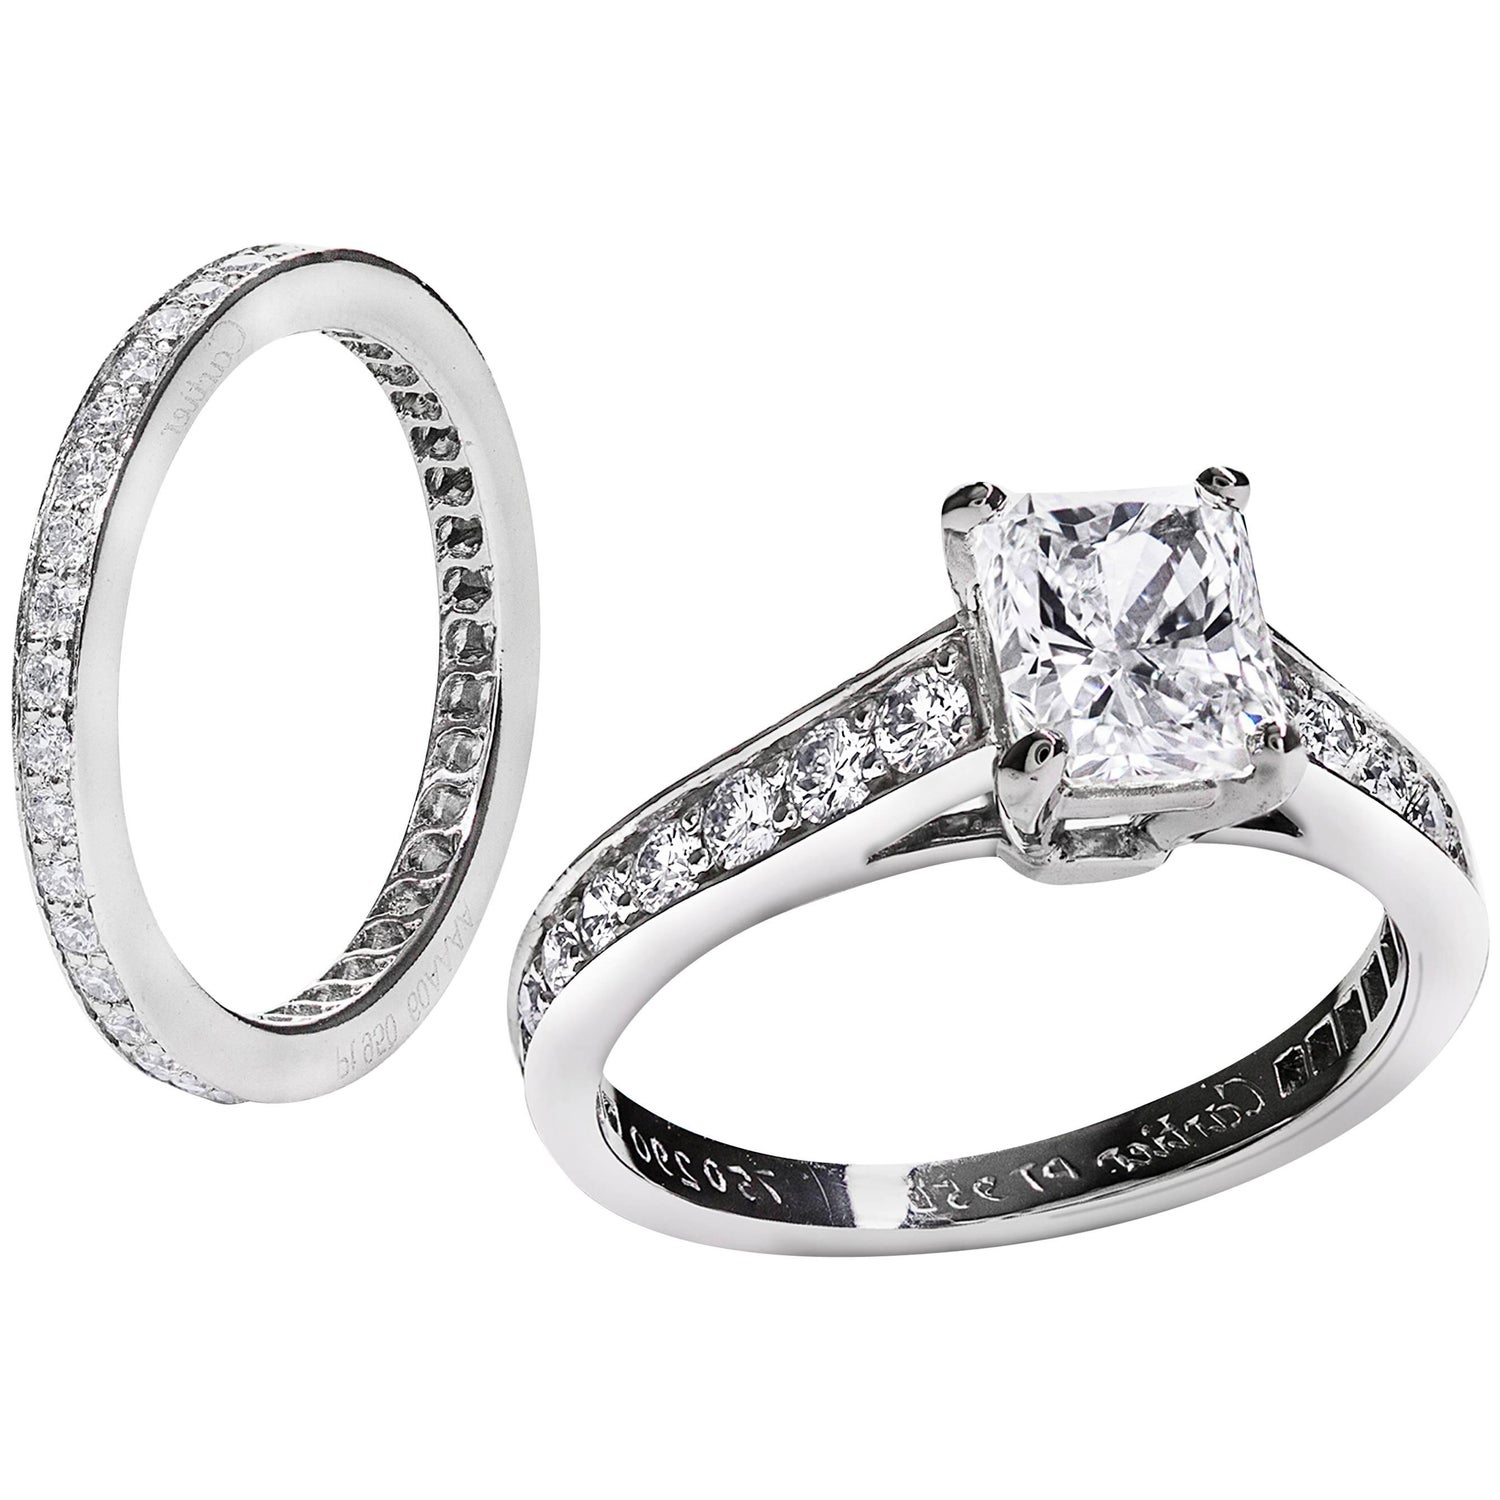 Cartier wedding rings 20 for sale at 1stdibs cartier 1895 solitaire radiant cut engagement ring and wedding band set junglespirit Choice Image